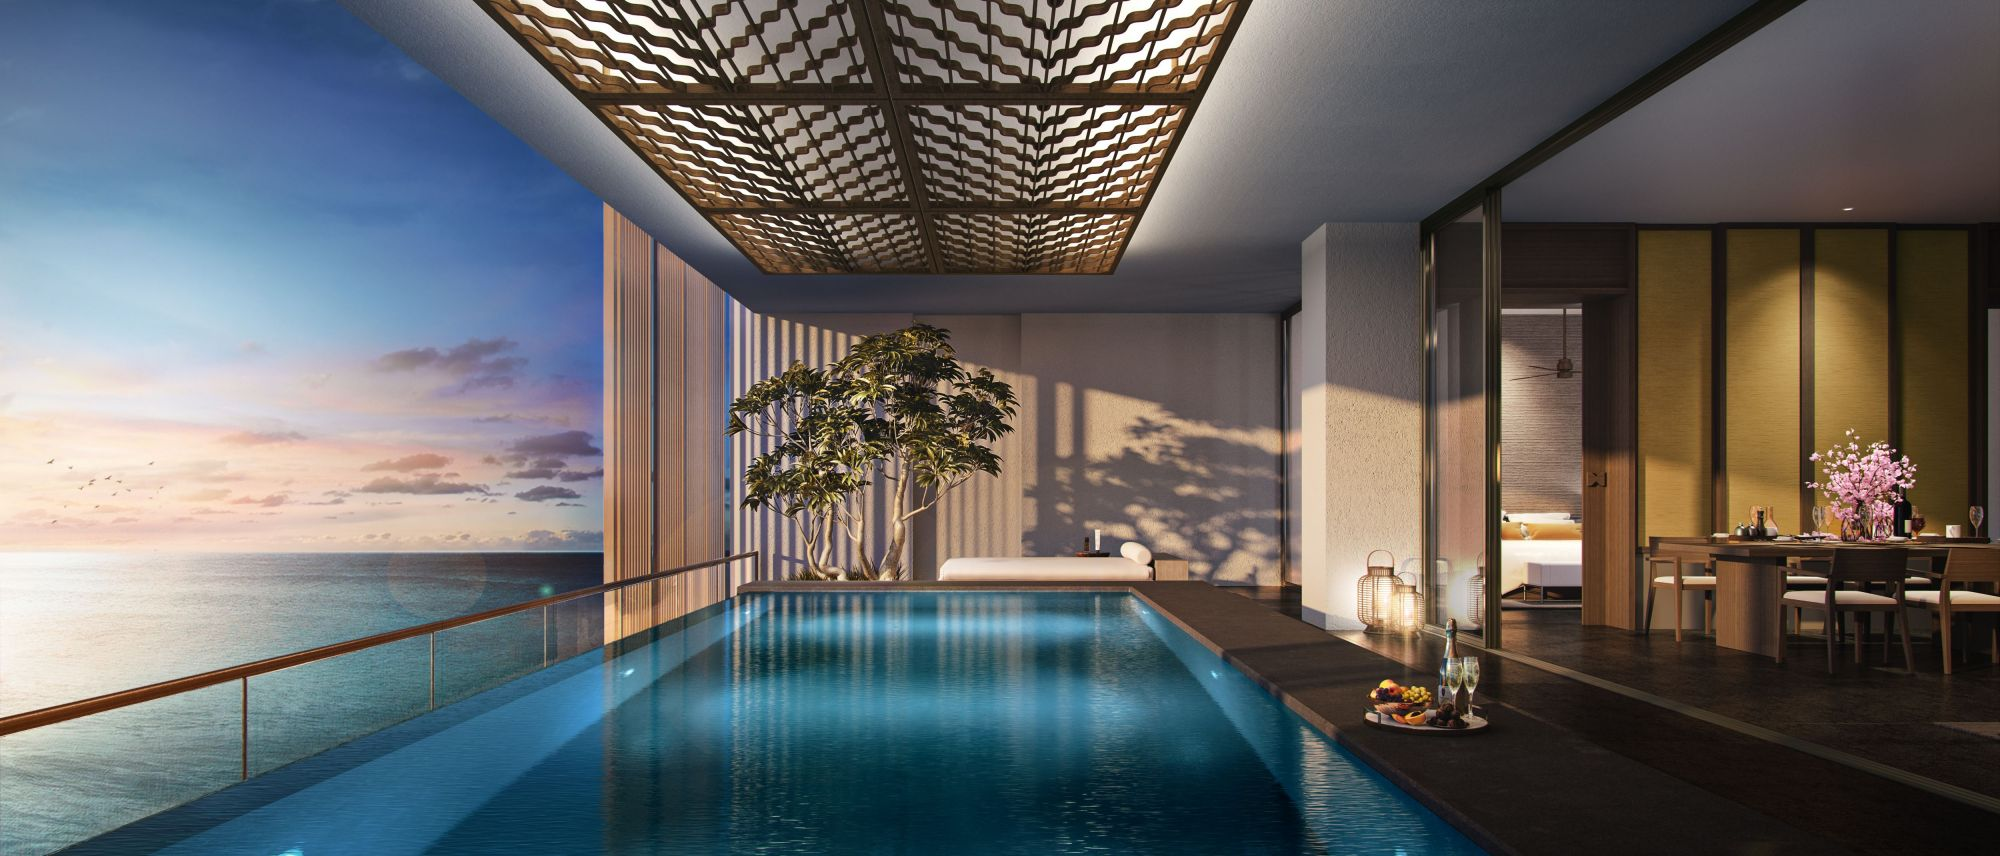 new luxury wellness hotels 2021 - Regent Pho Quoc, Vietnam